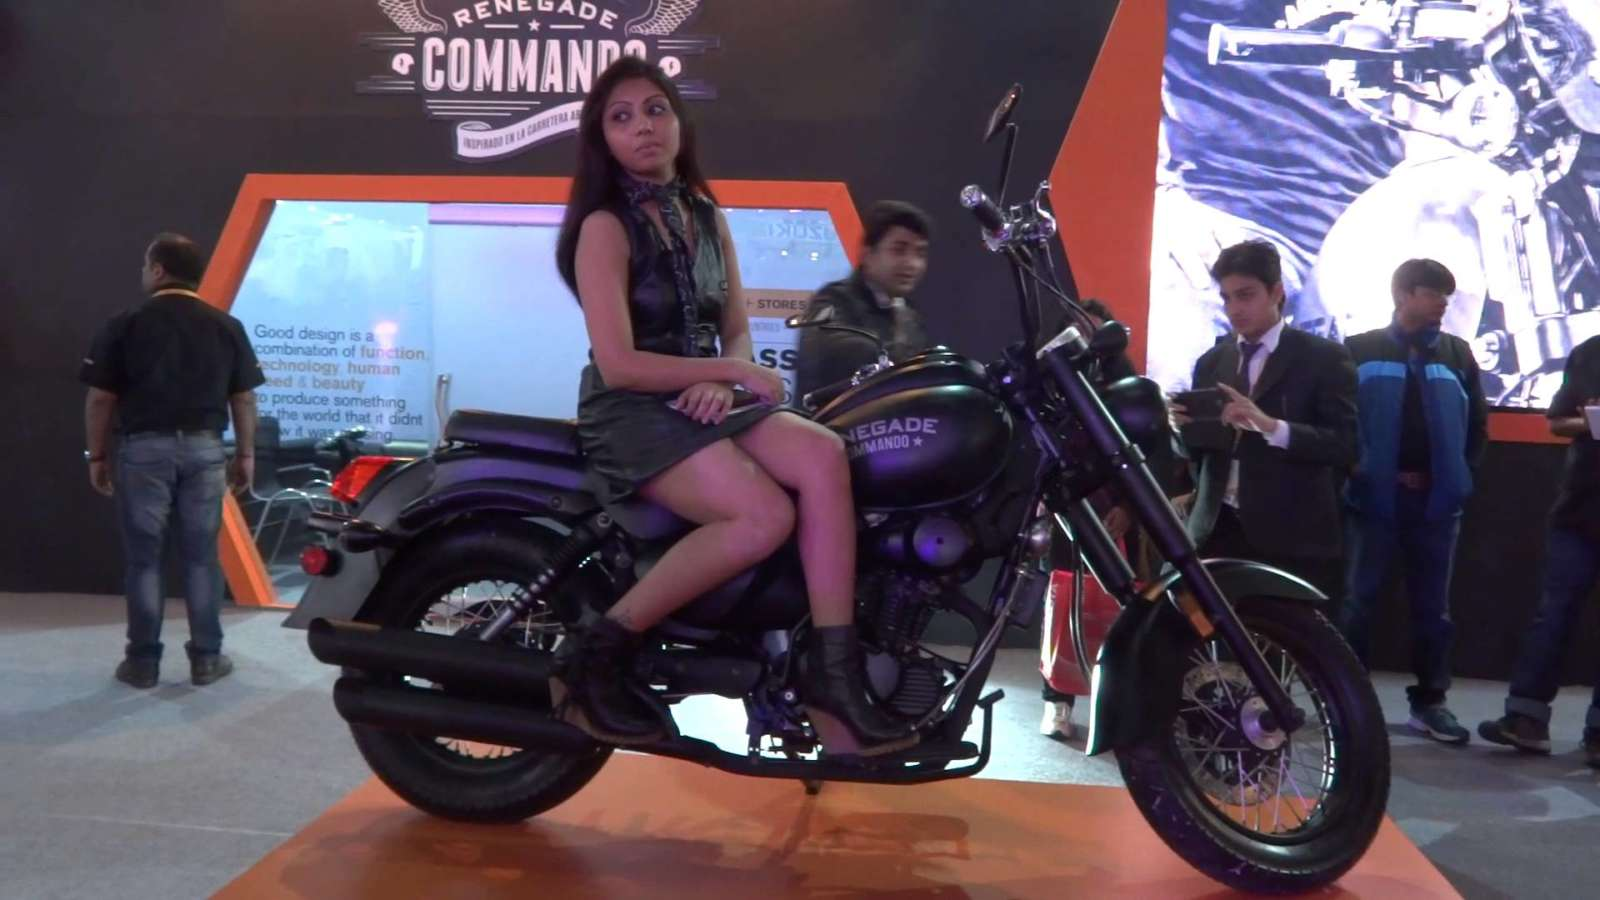 United Motors 39 Renegade Commando To Be Launched By